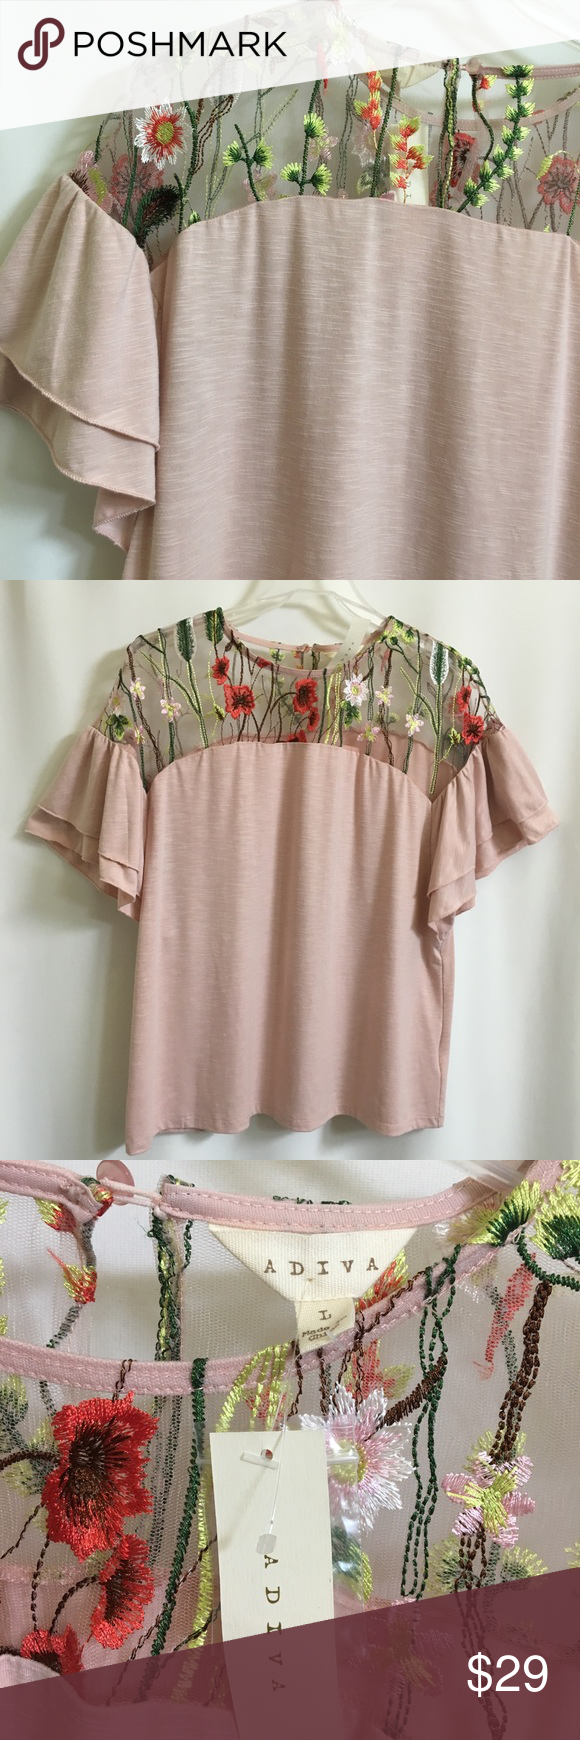 fd21a59d438 ... with lace insert New ADIVA blouse in pale pink Embroidered floral lace  top Short sleeves    2 layer ruffle One button closure on back Size - Large  ...